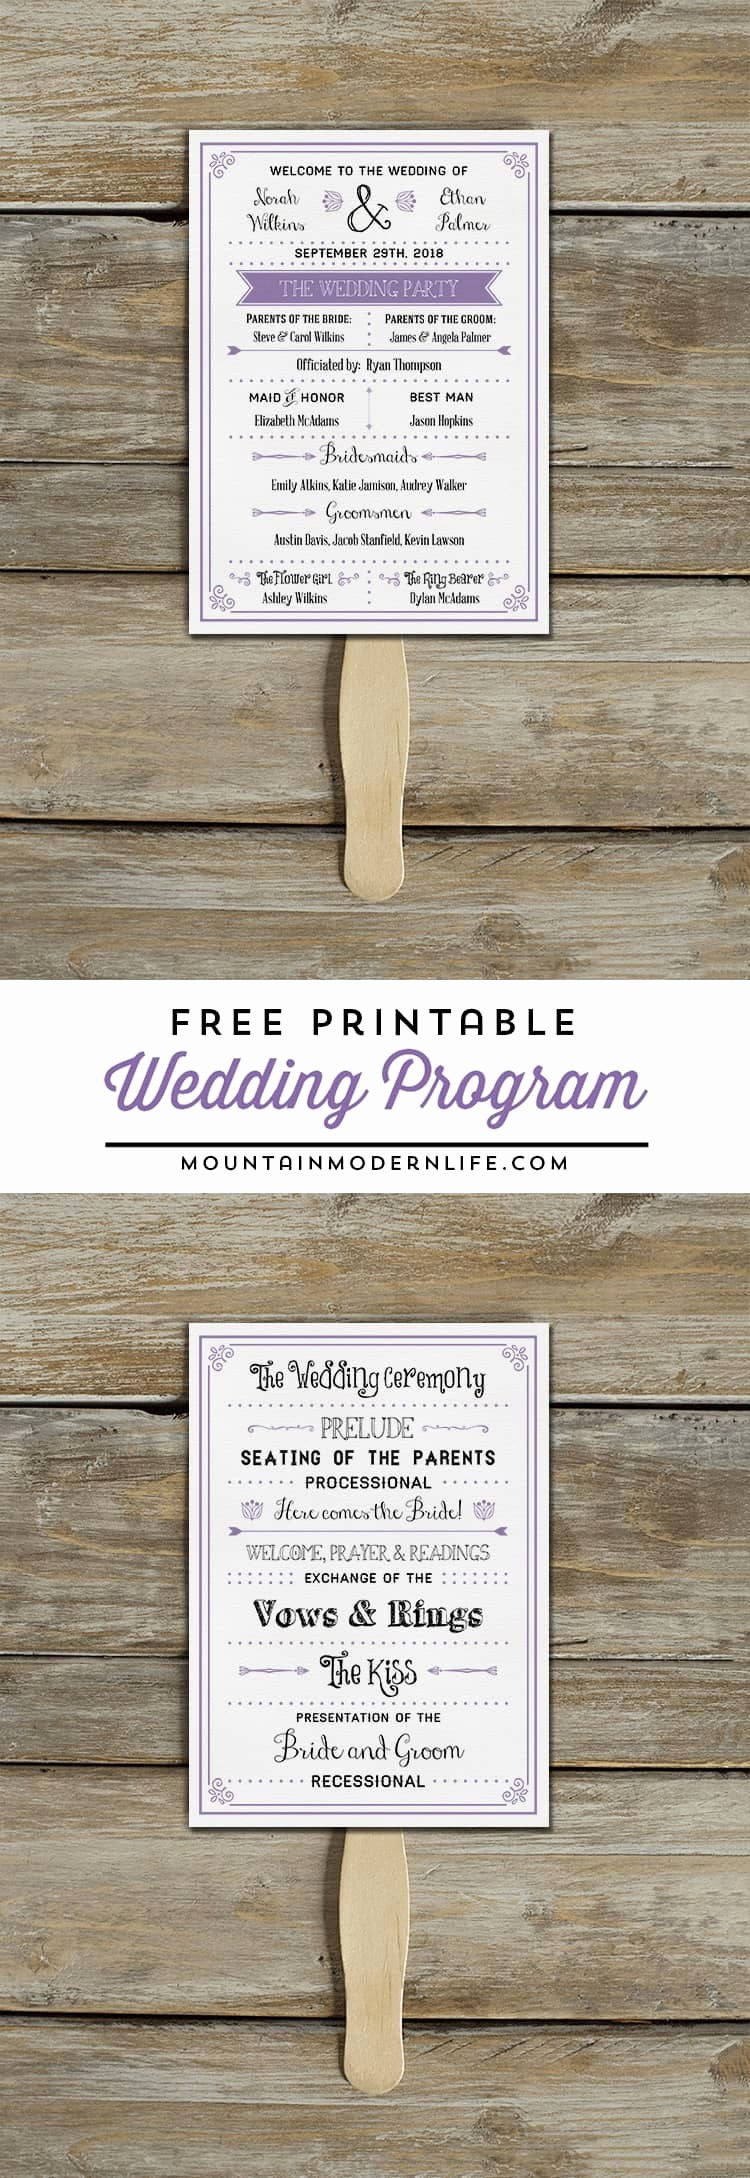 Free Wedding Ceremony Program Template Fresh Free Printable Wedding Program